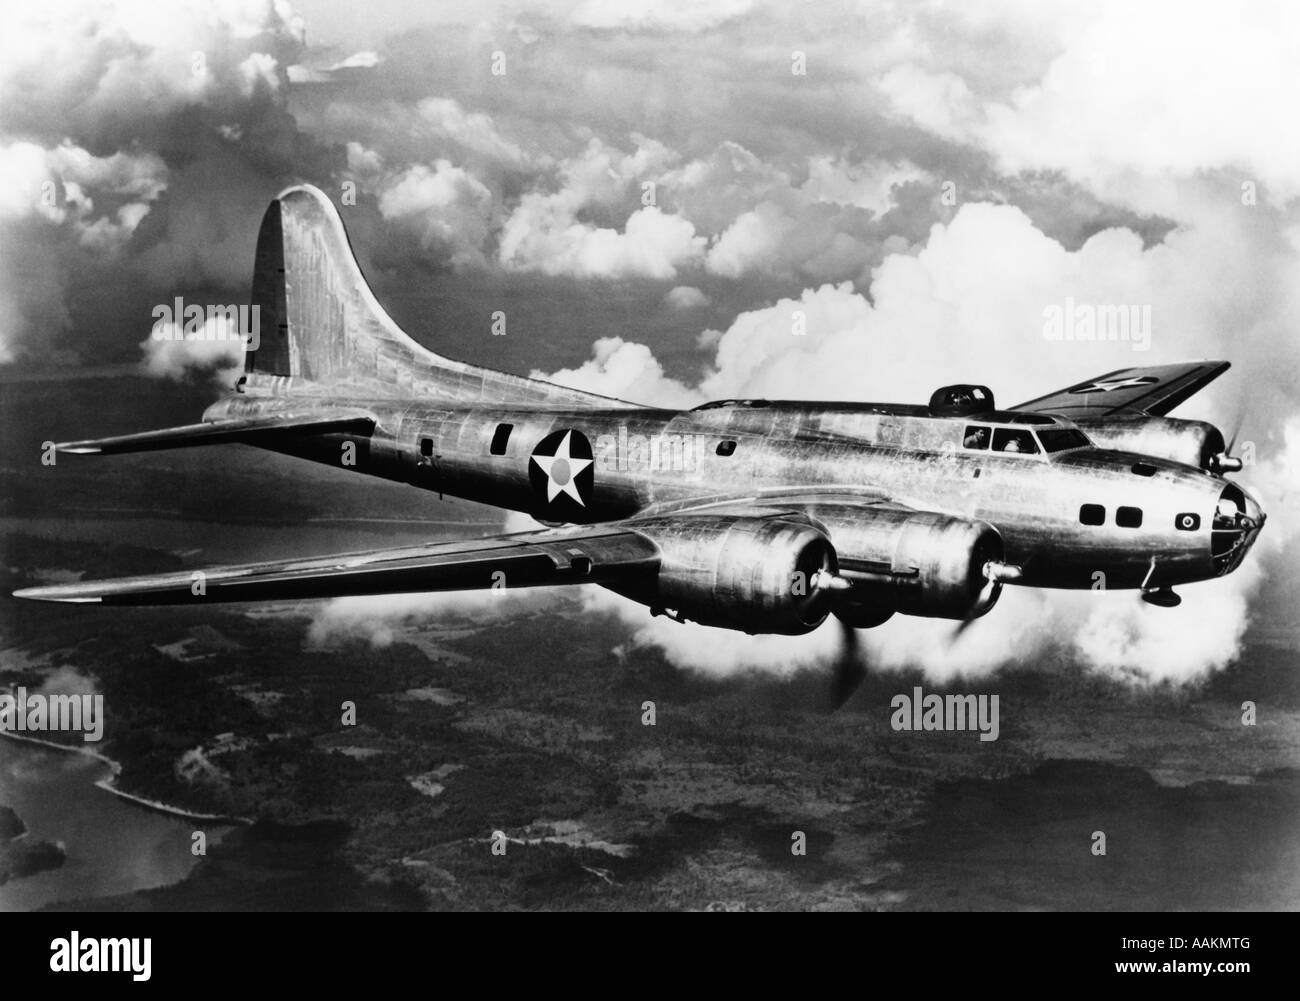 1940s WORLD WAR II AIRPLANE BOEING B-17E BOMBER FLYING THROUGH CLOUDS - Stock Image